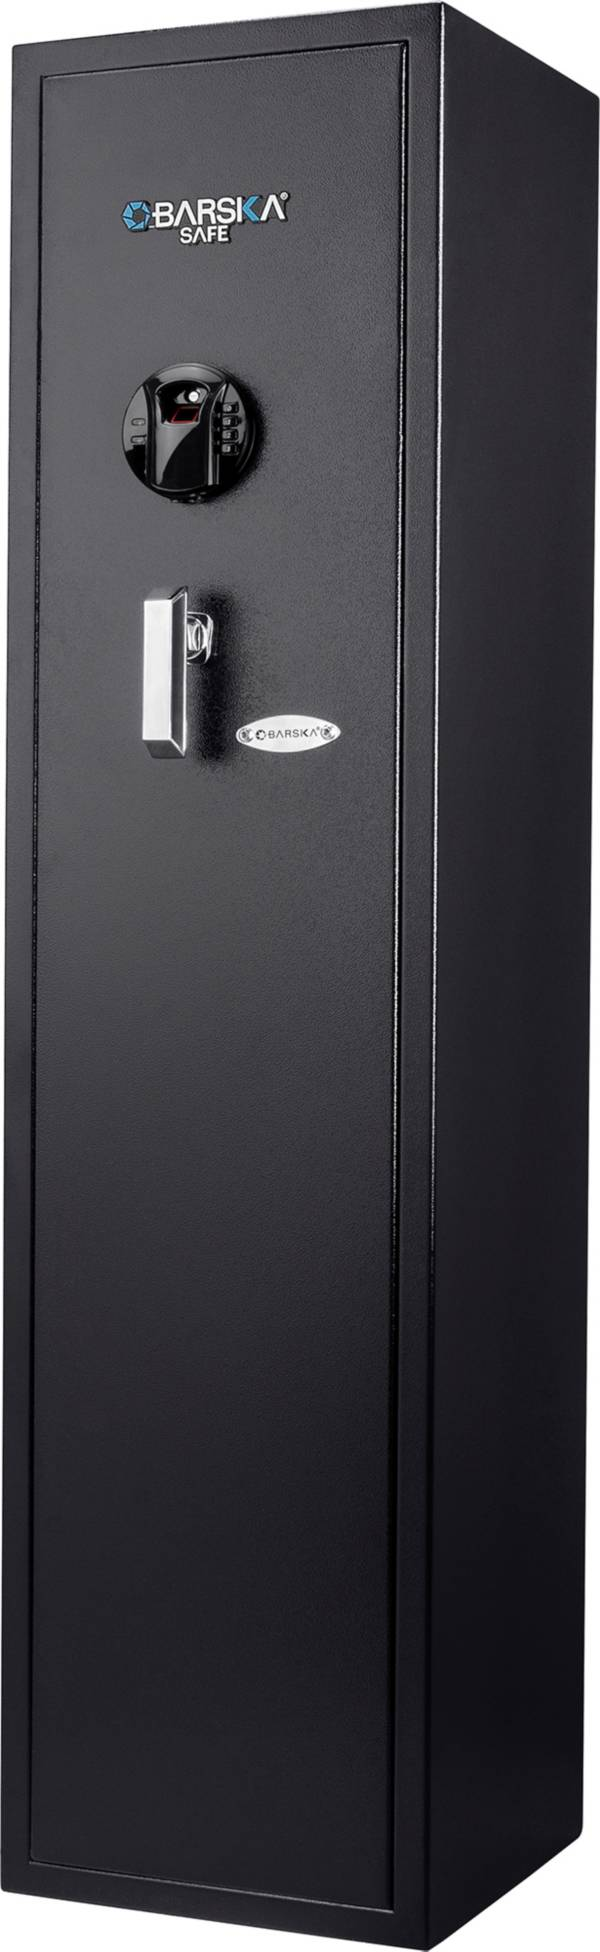 Barska HQ900 Large Quick Access 5-Gun Rifle Safe with Biometric Keypad Lock product image